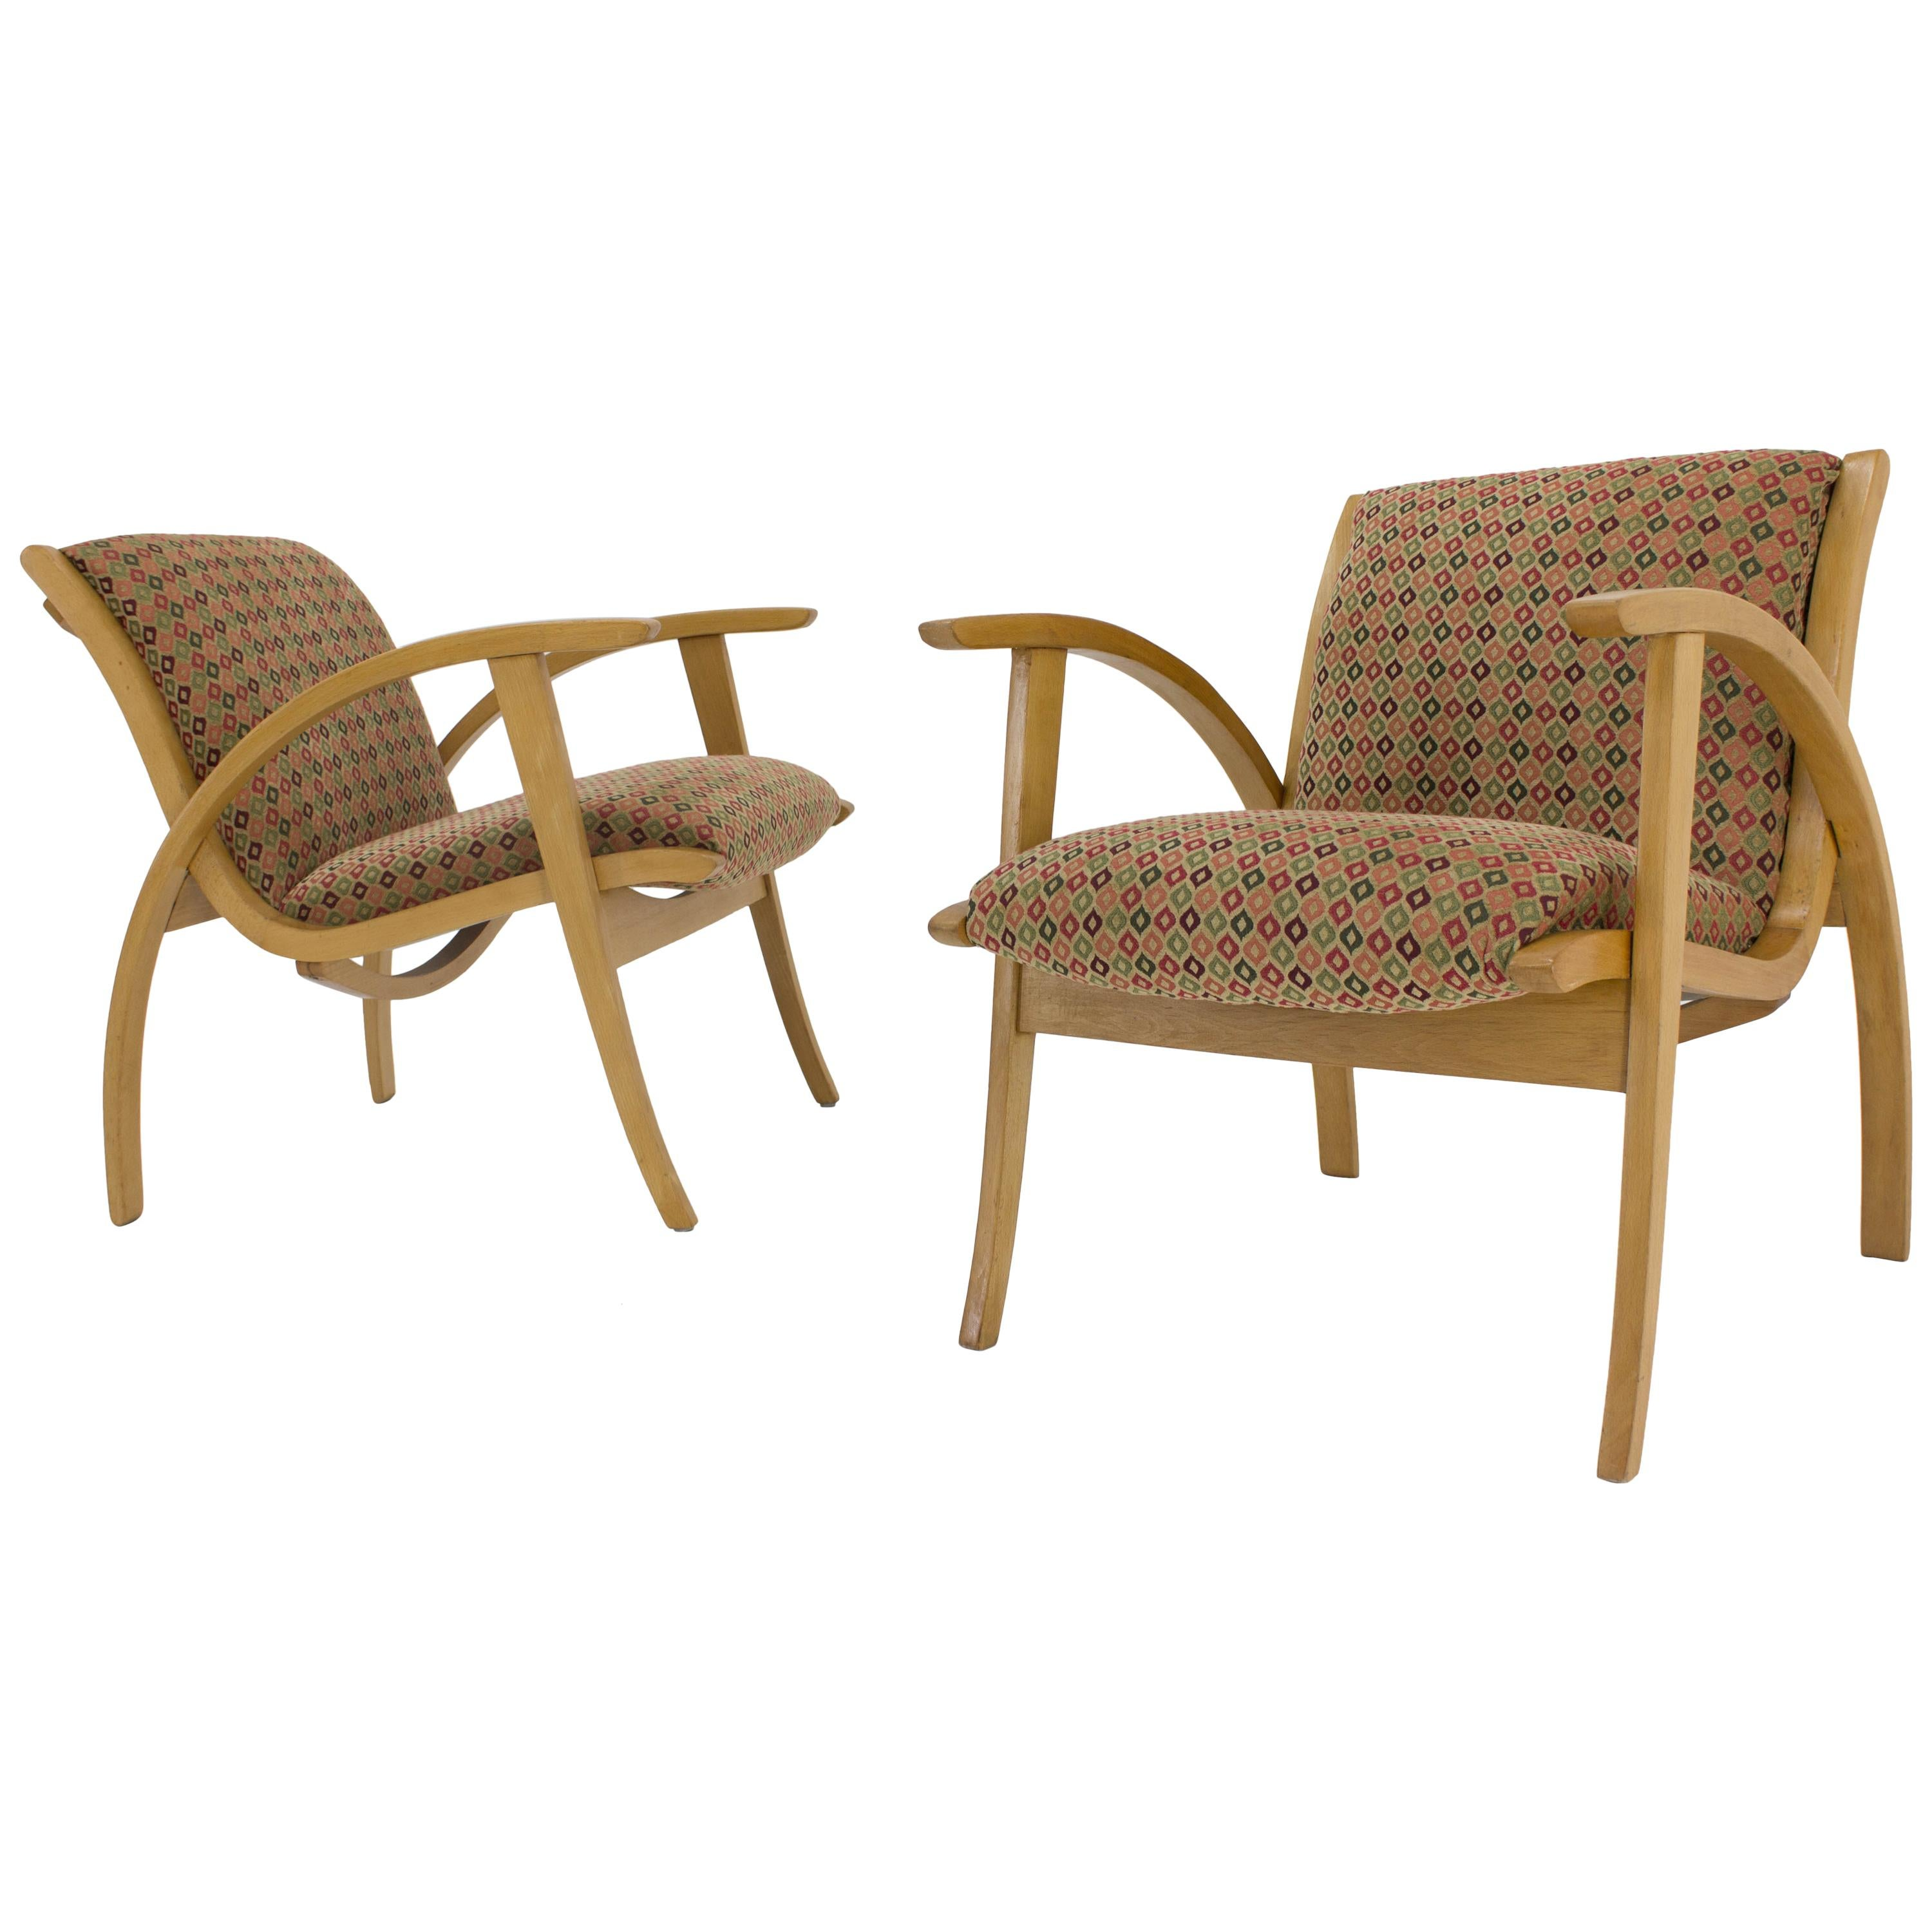 Midcentury Armchairs, Set of Two, 1960s